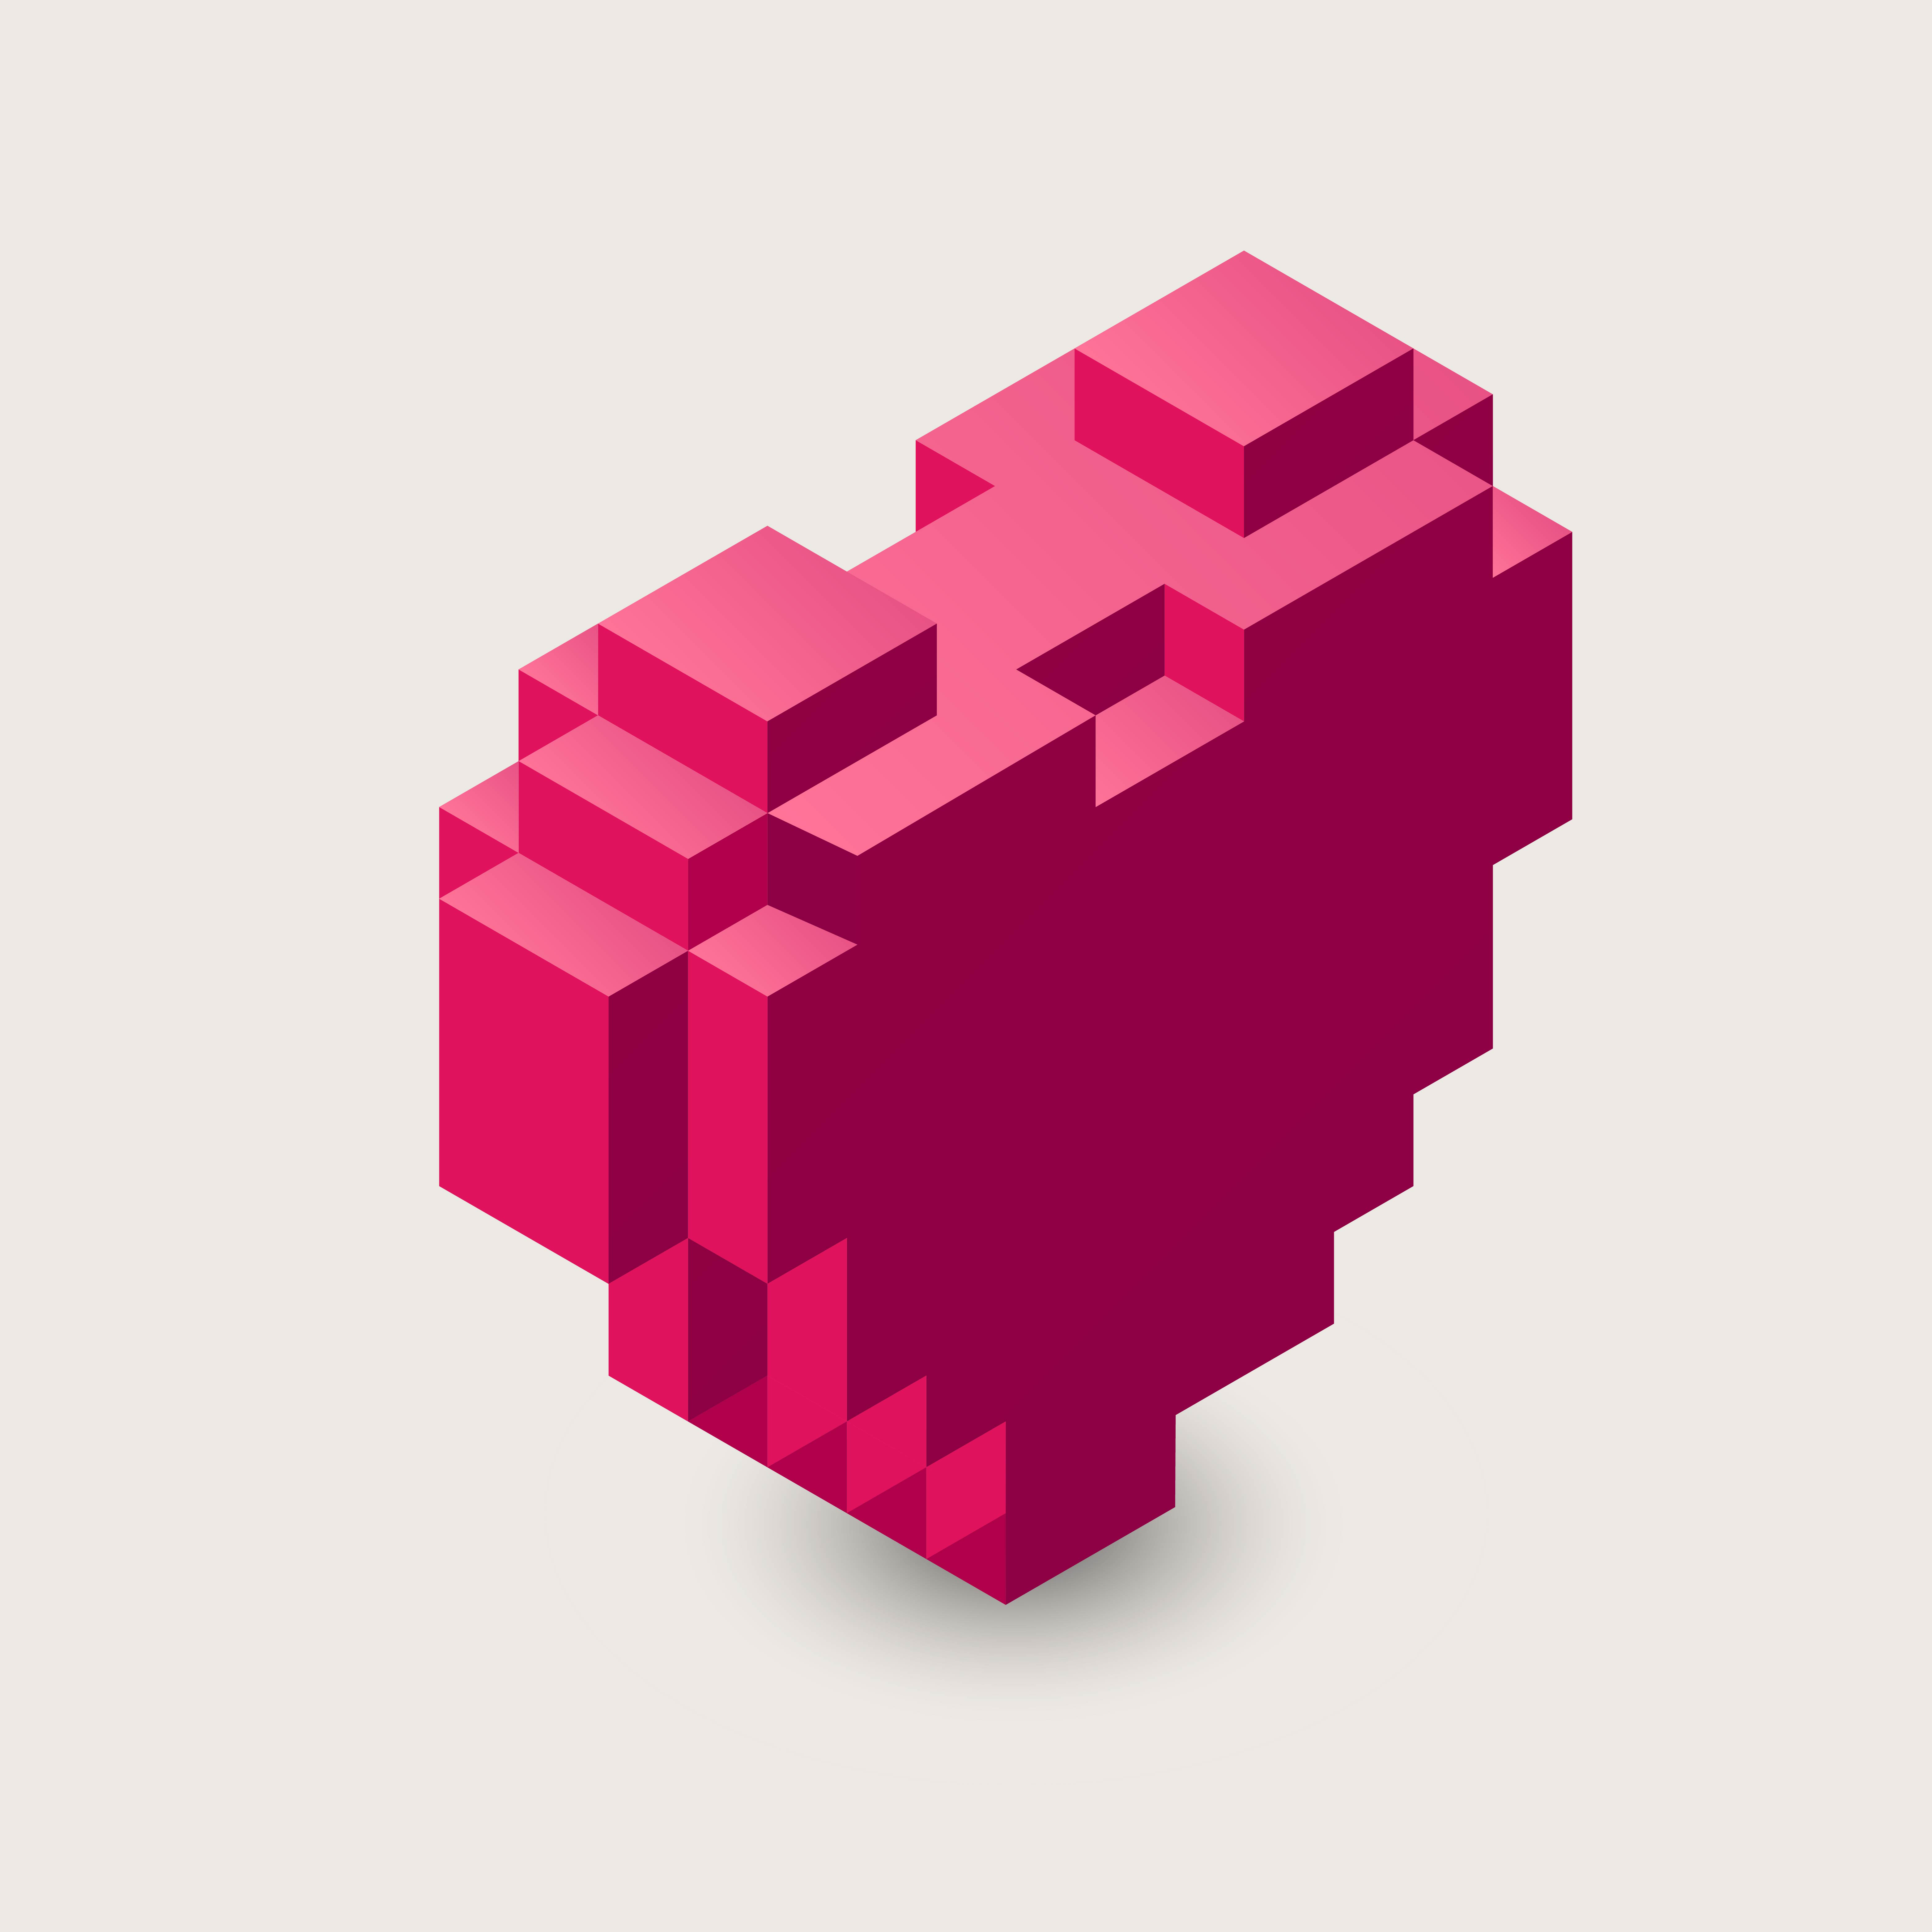 3d pixel heart icon. - Download Free Vectors, Clipart ...Copy And Paste Symbols For Pixel Gun 3d